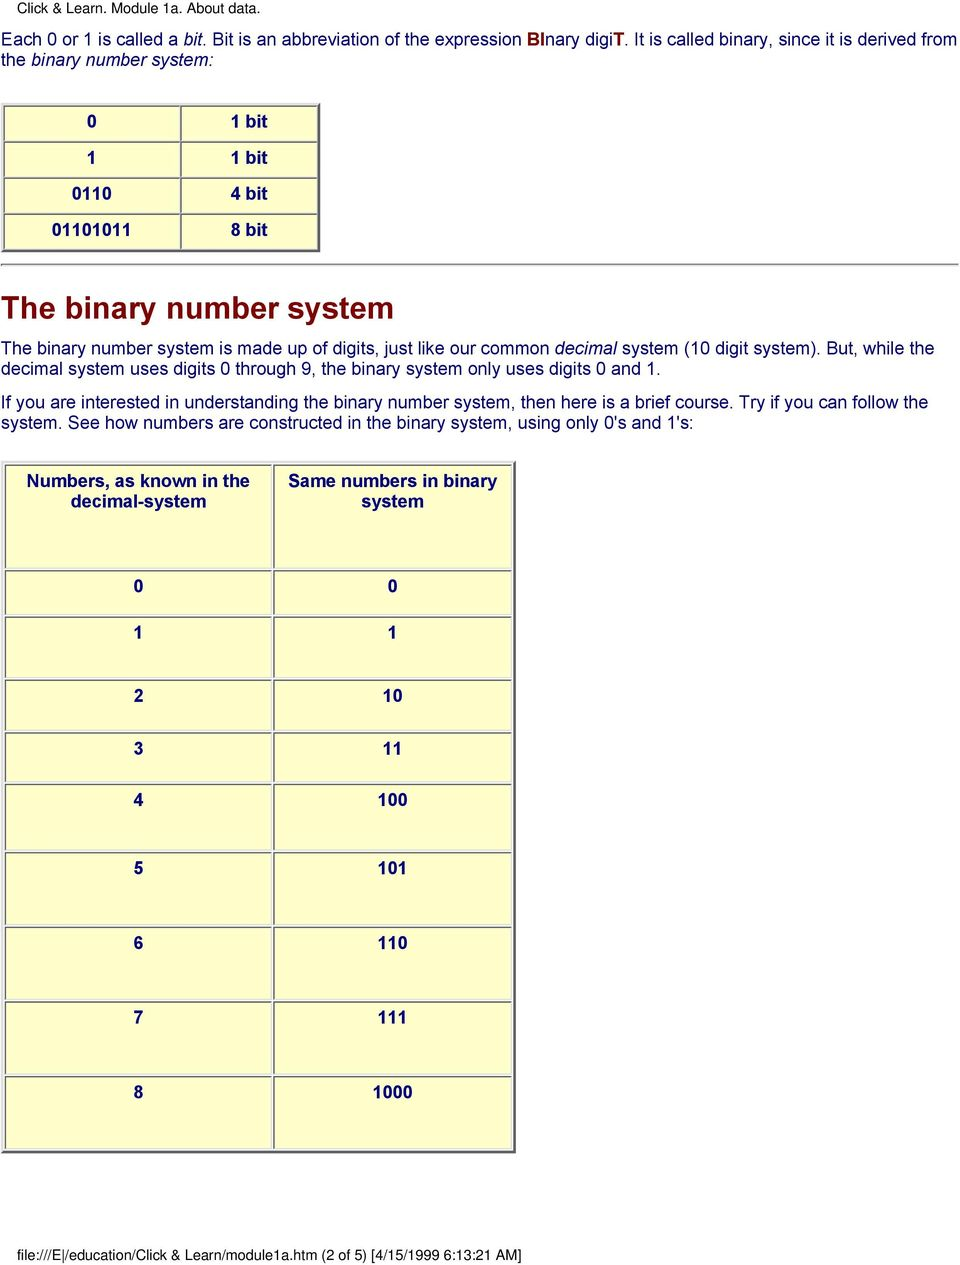 common decimal system (10 digit system). But, while the decimal system uses digits 0 through 9, the binary system only uses digits 0 and 1.